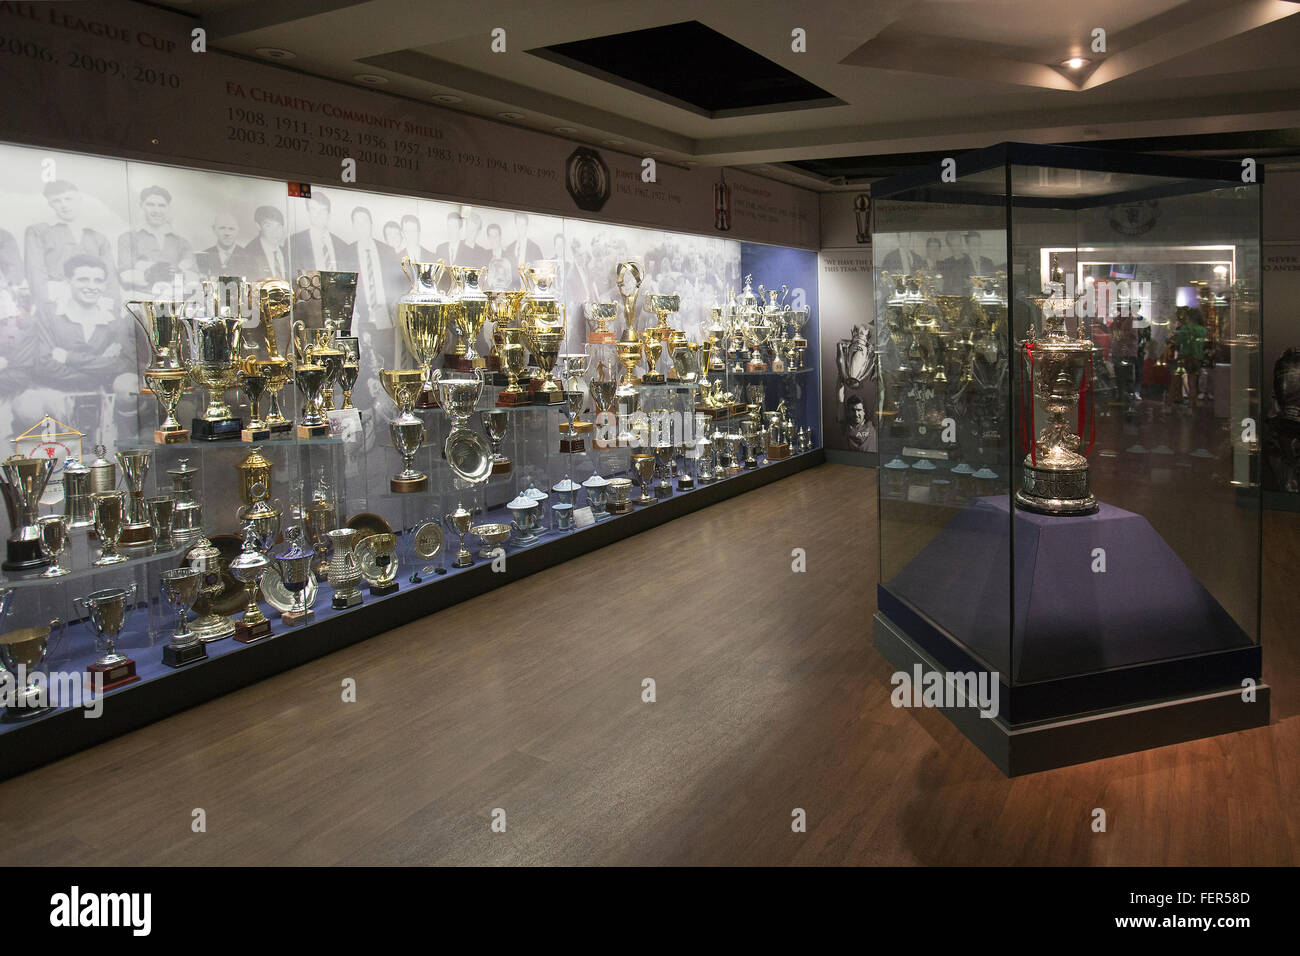 Trophy cabinet in the Trophy room at Old Trafford Stadium, home to Manchester United FC - Stock Image